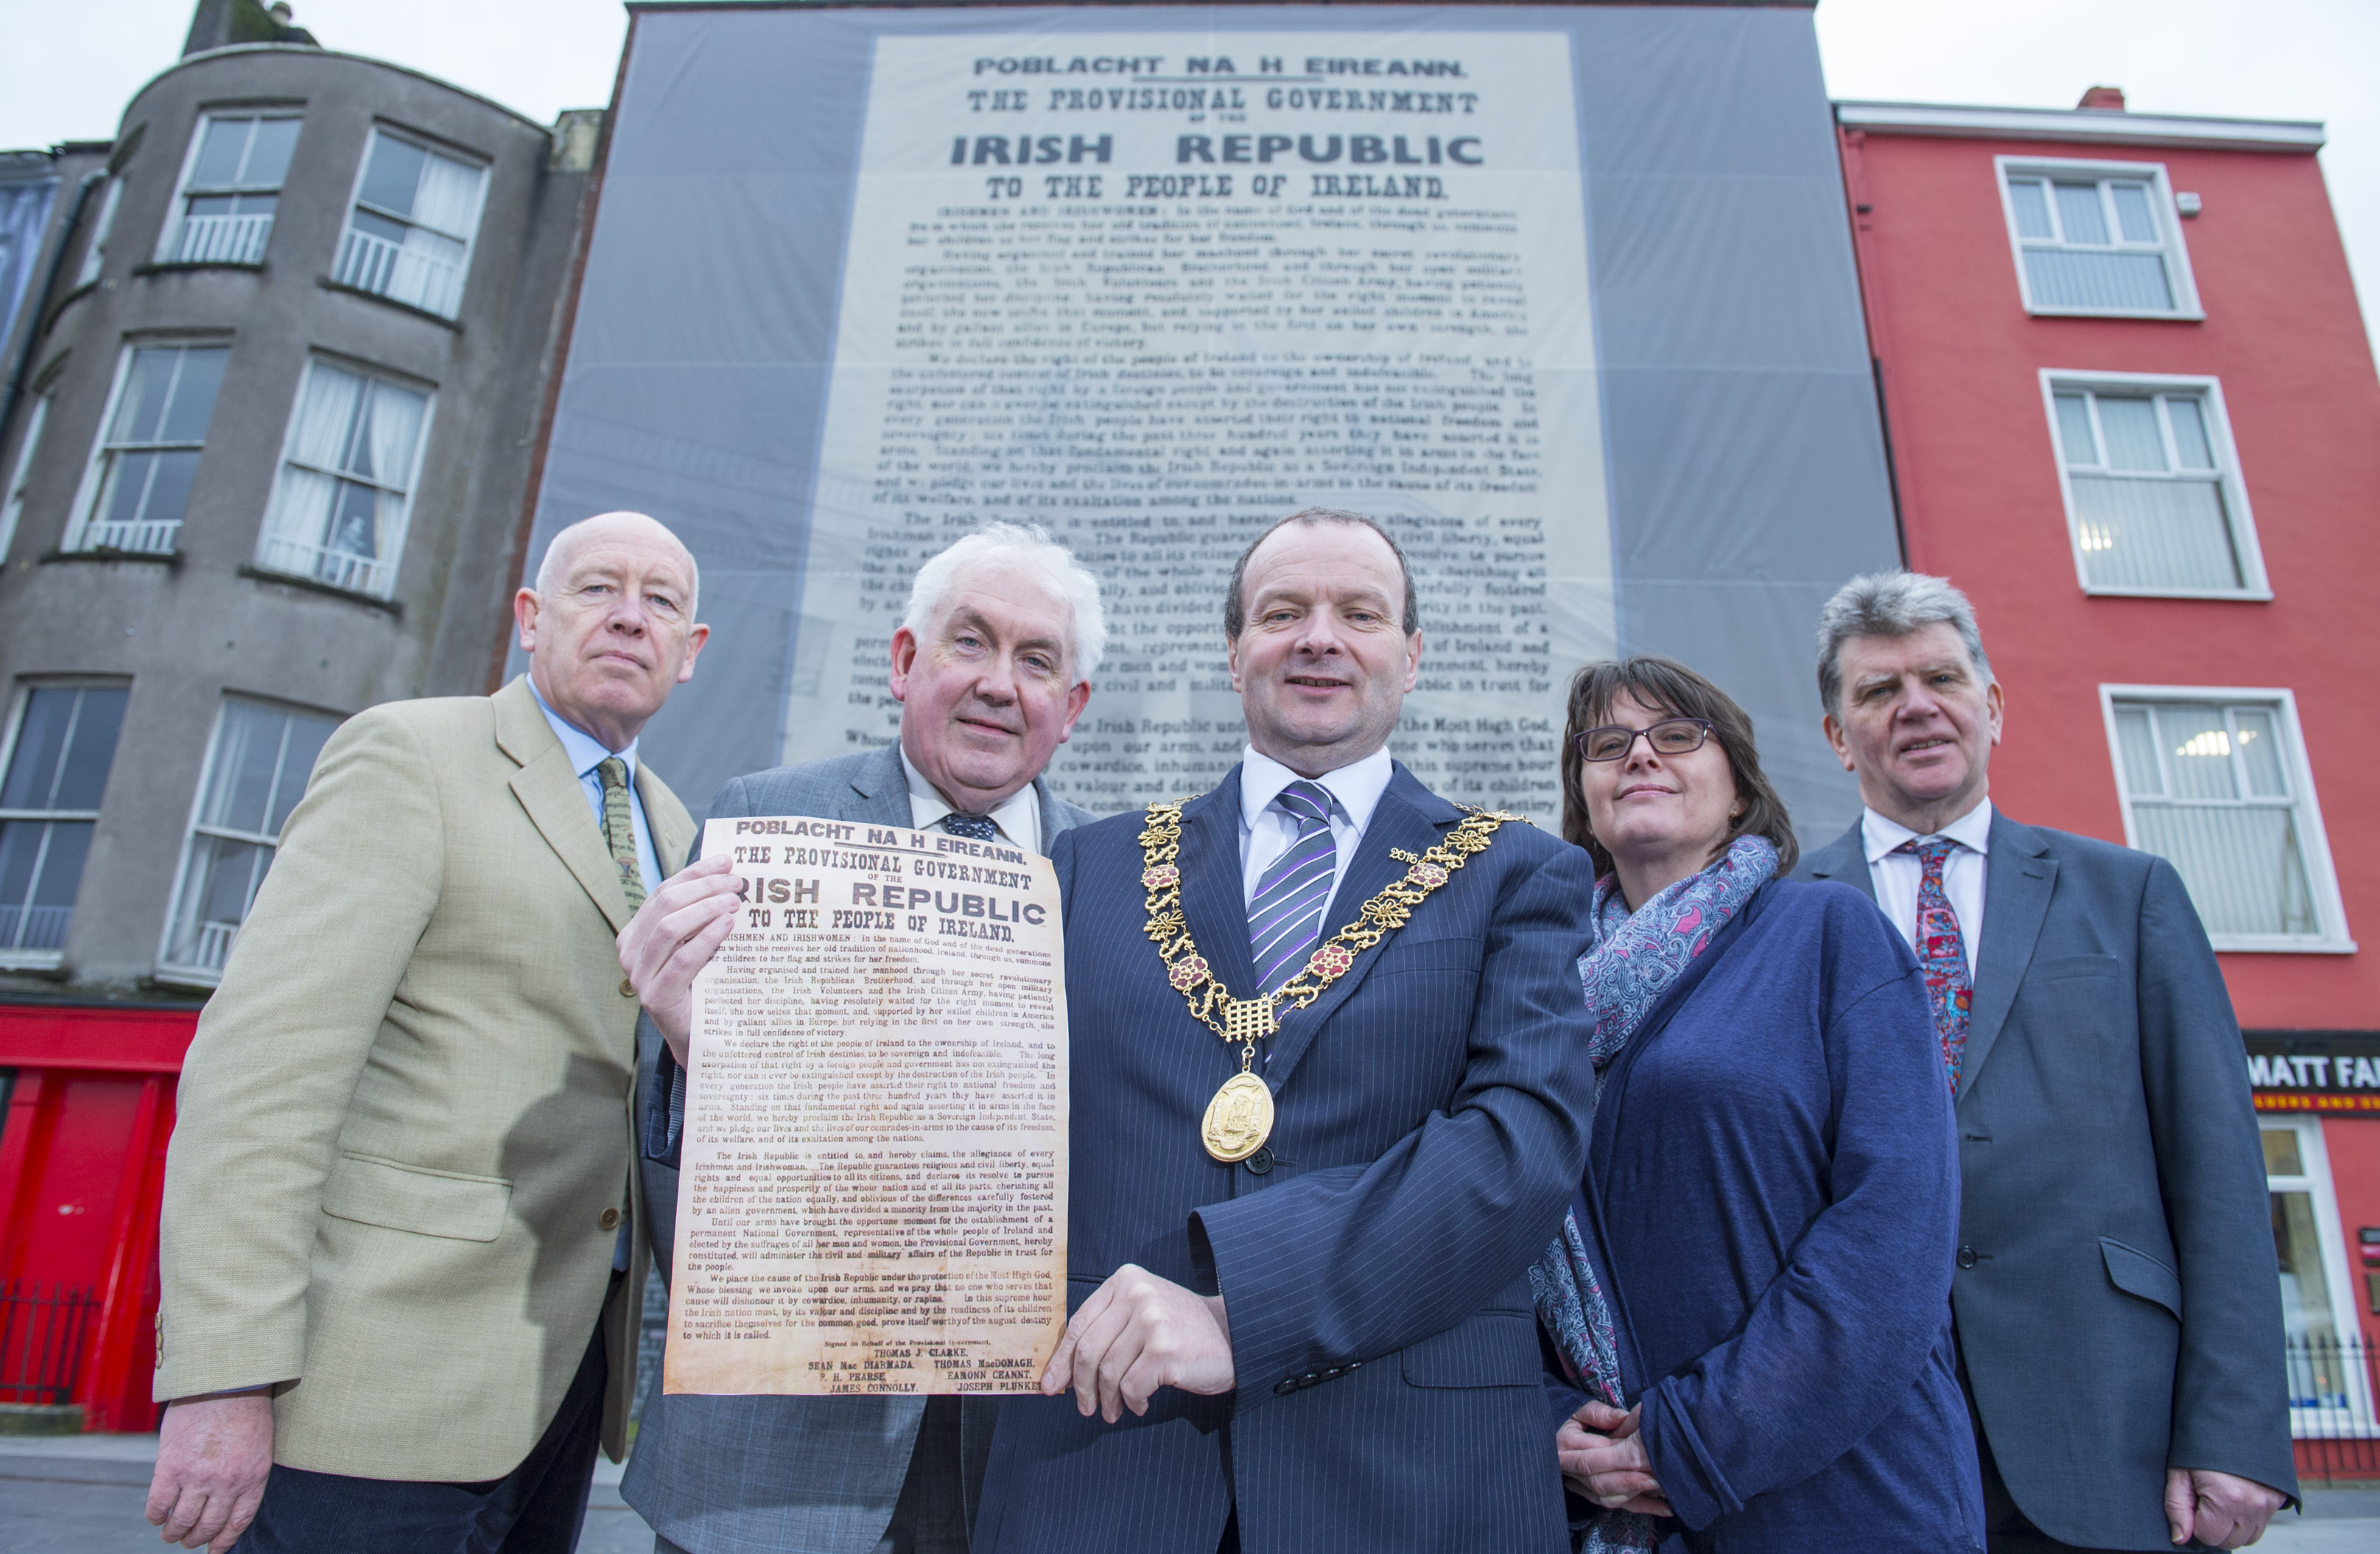 Cork City Council 1916 commemorations pic1.jpg